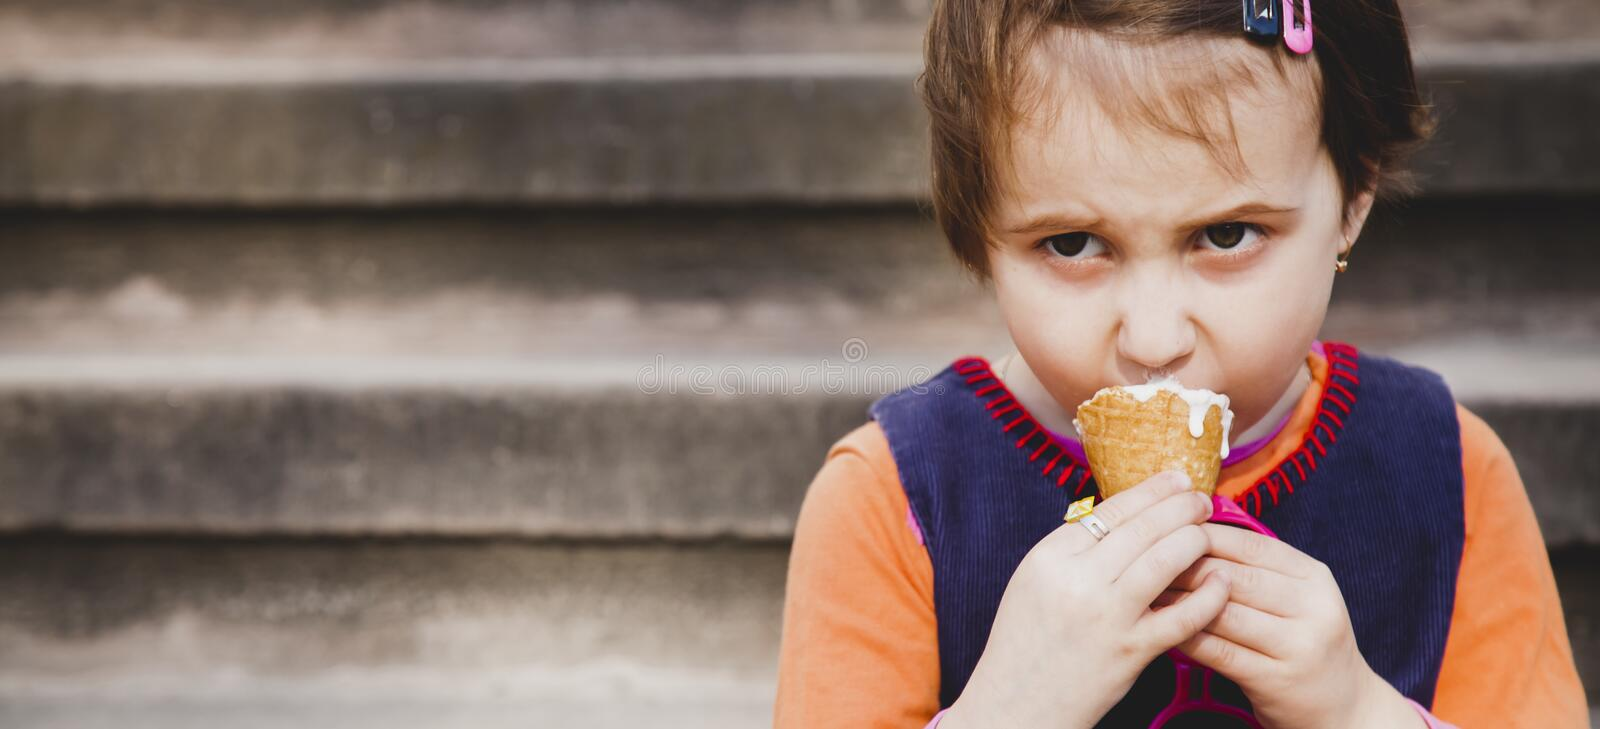 Little cute child girl eating ice cream. Food, dessert, childhood, satisfaction, carelessness concept.  royalty free stock photo